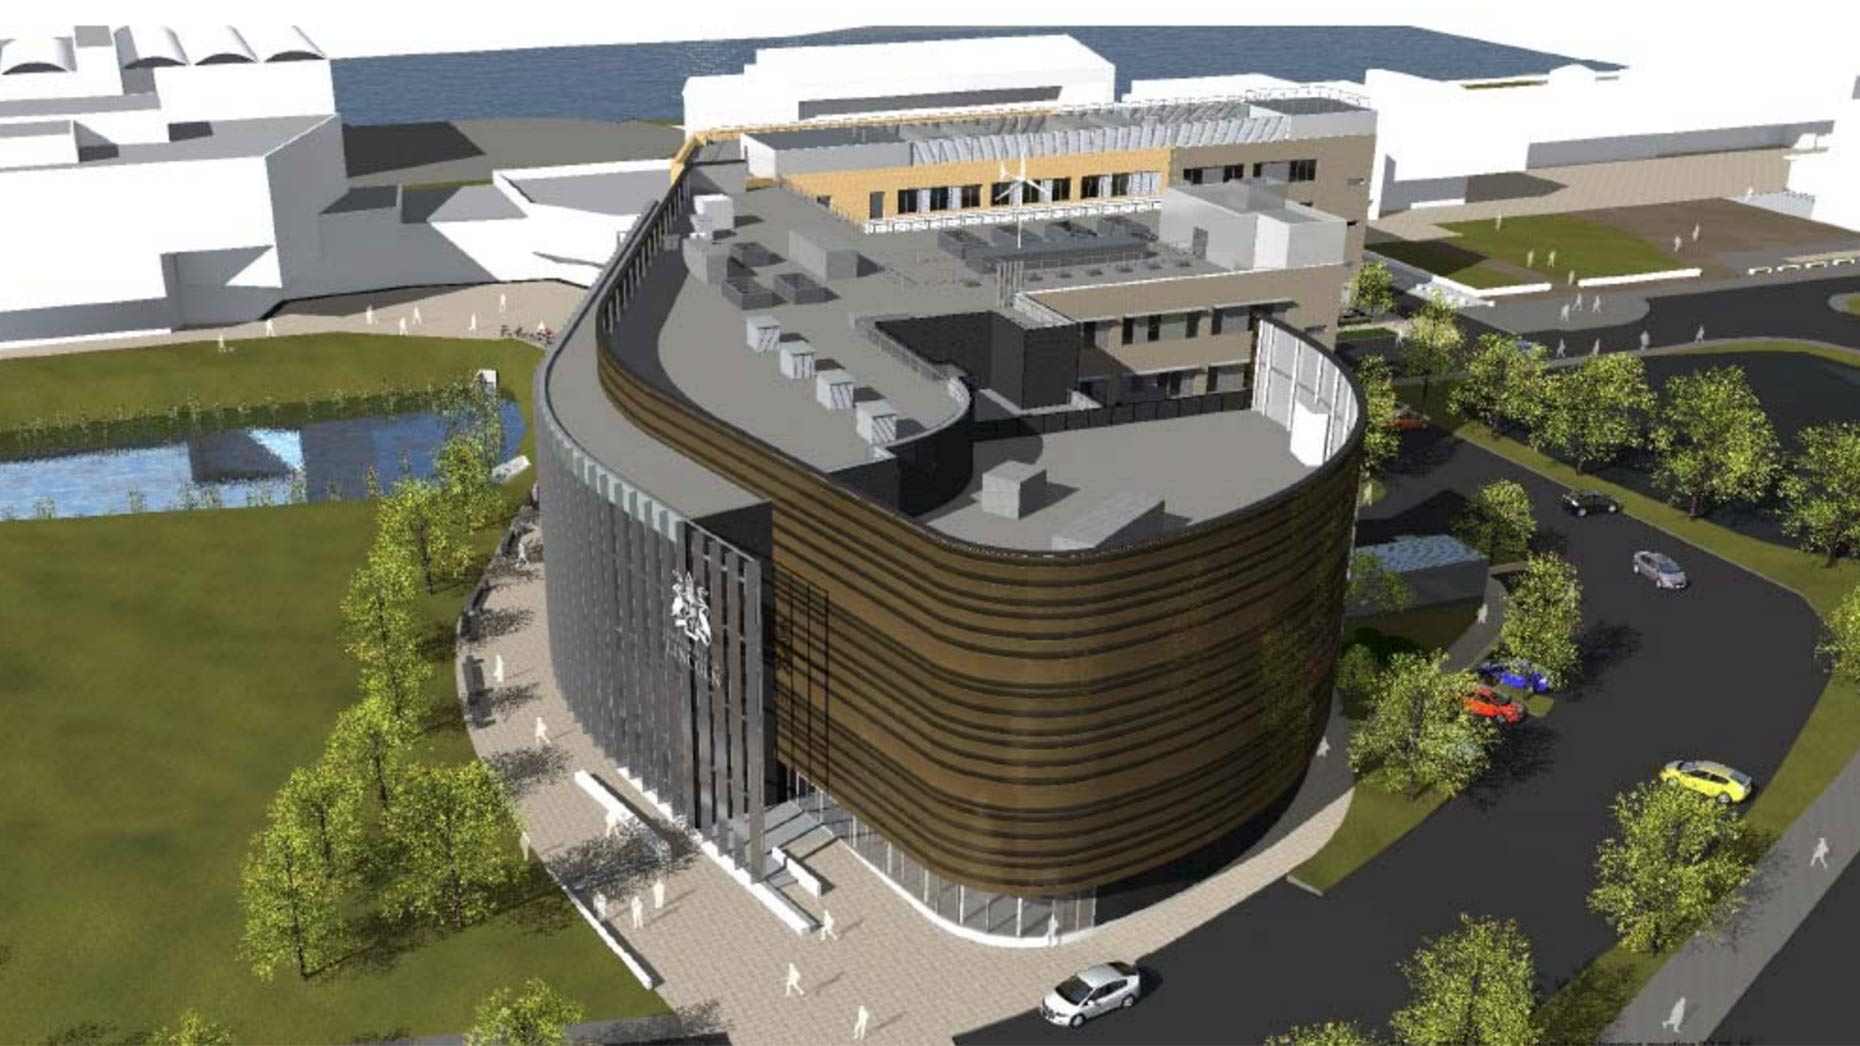 The building stems from the existing Engineering hub on the site.